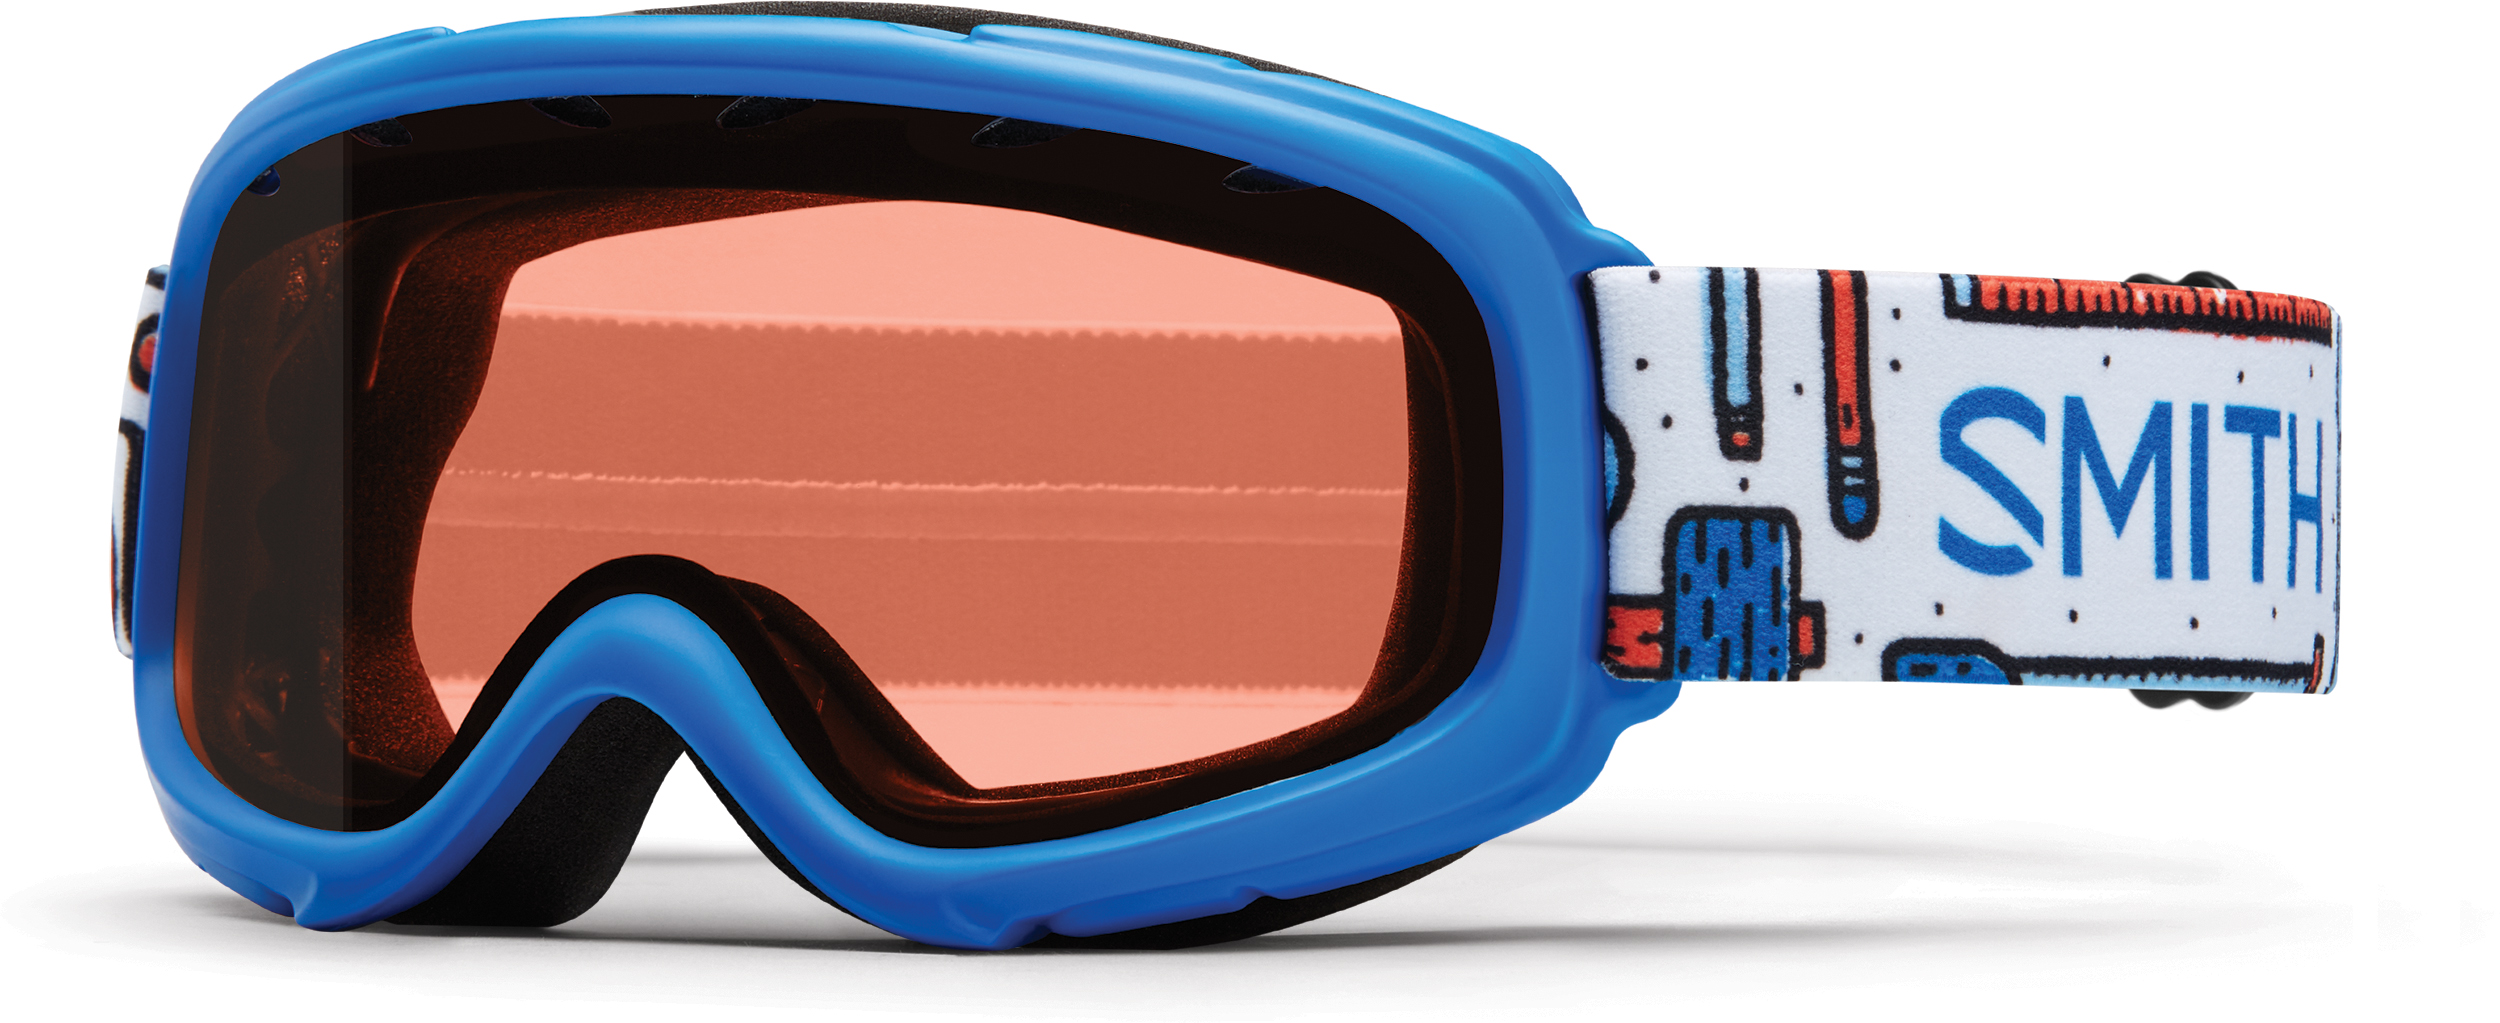 913c32aa16 Smith Gambler Goggles - Children to Youths